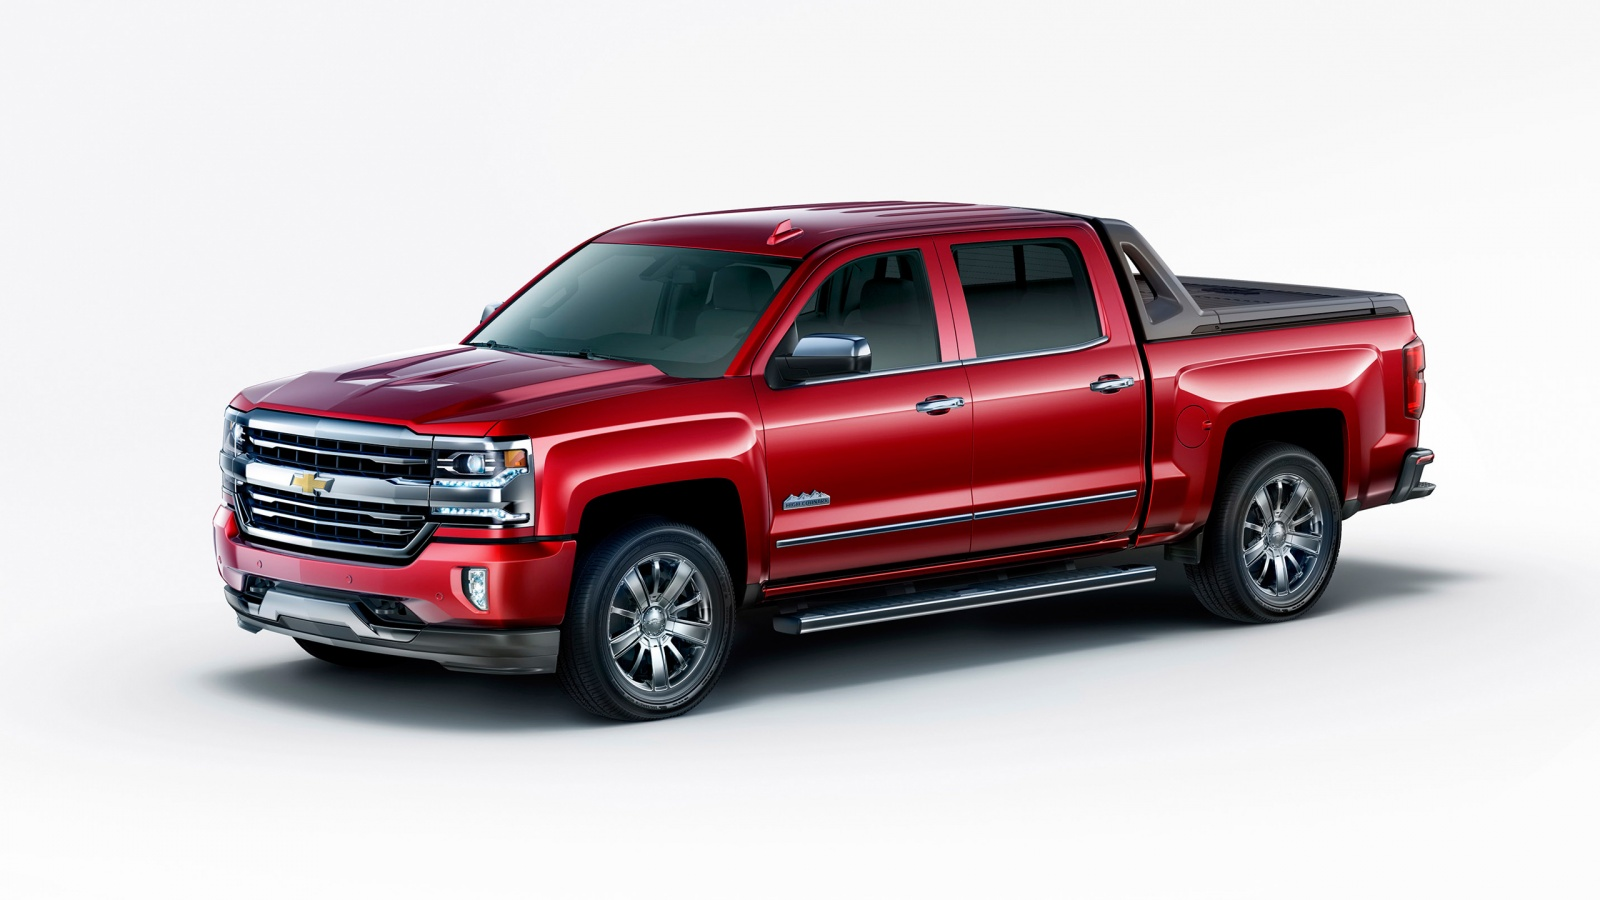 2016 Chevrolet Silverado High Desert Package 1600x900